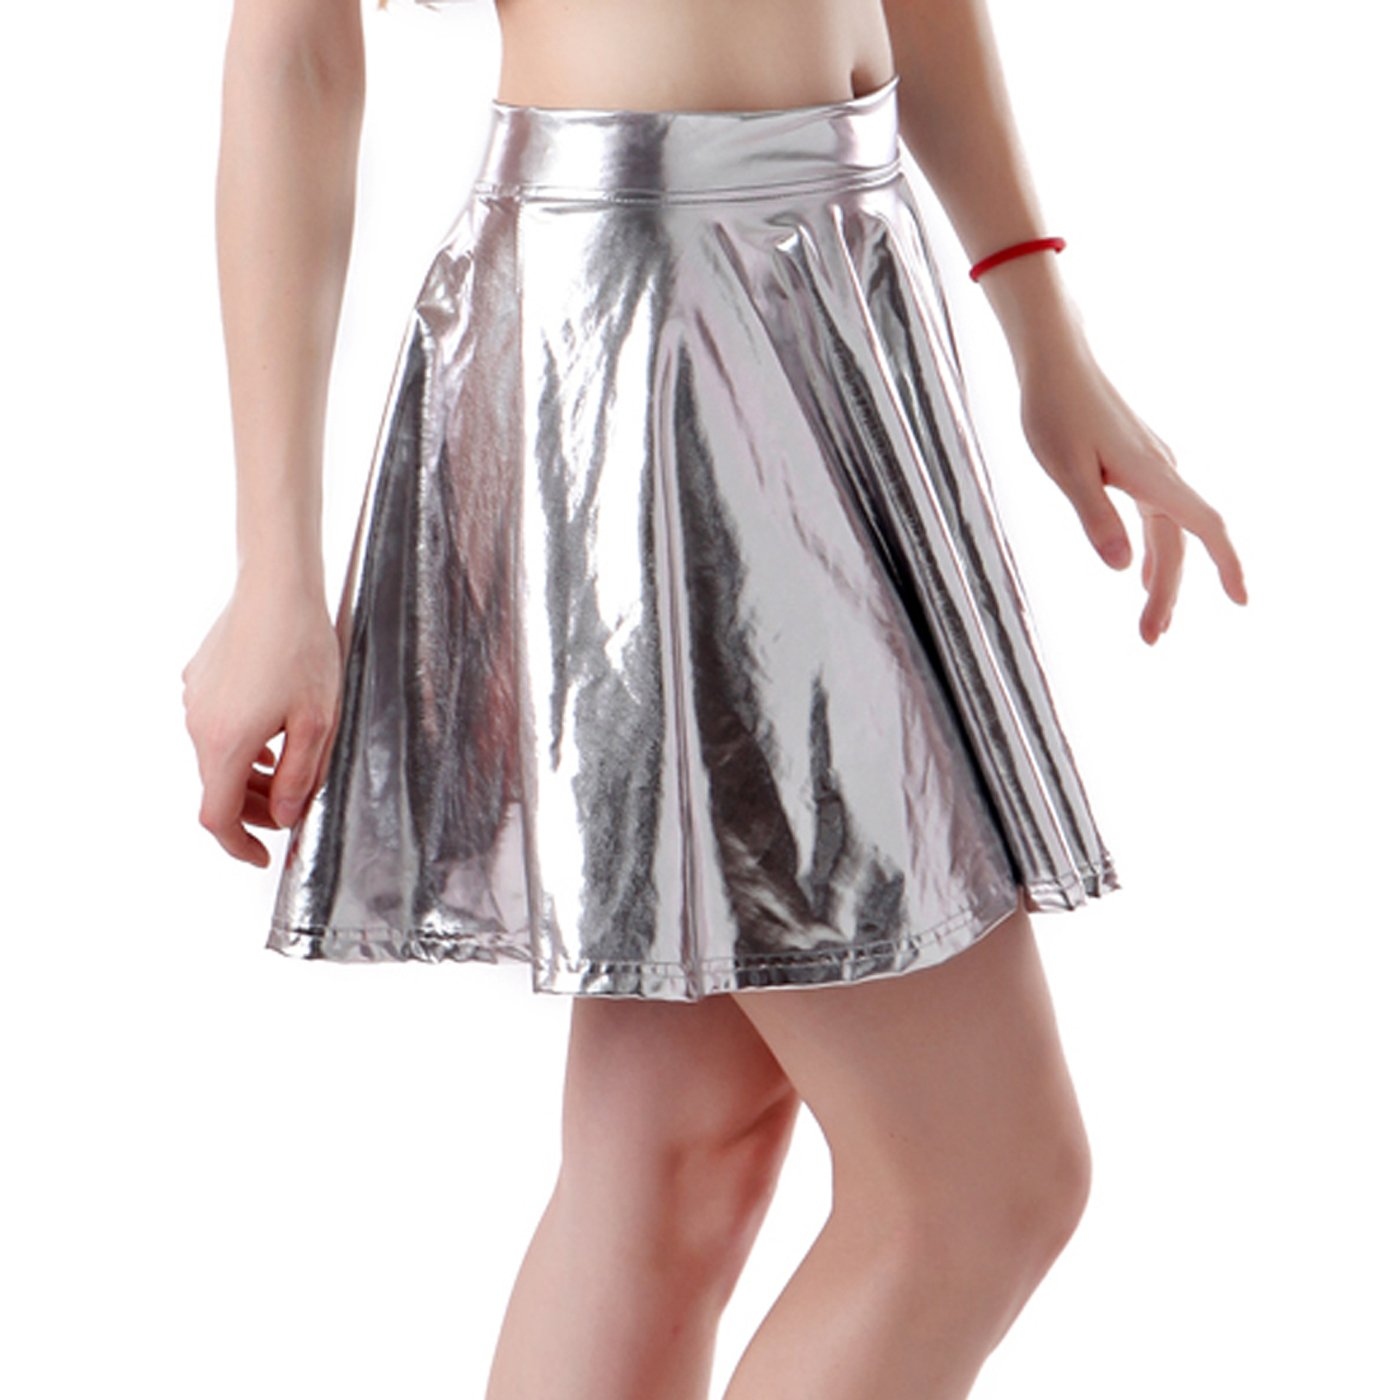 HDE Women's Shiny Liquid Metallic Wet Look Flared Pleated Skater Skirt (Silver, Small) by HDE